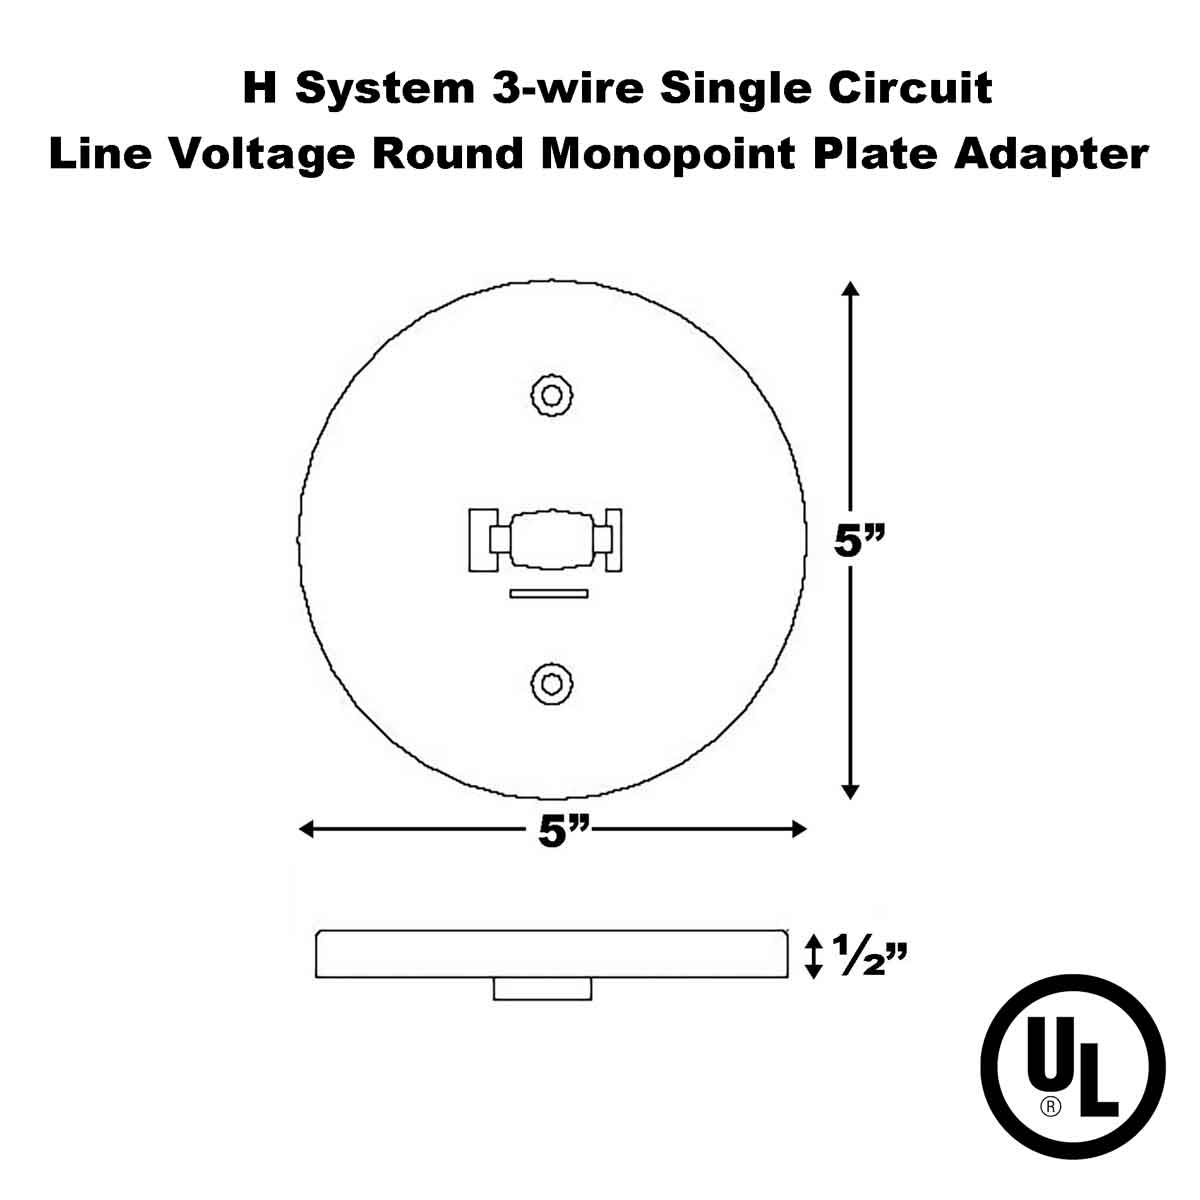 Line Voltage Round Monopoint Plate Adapter.